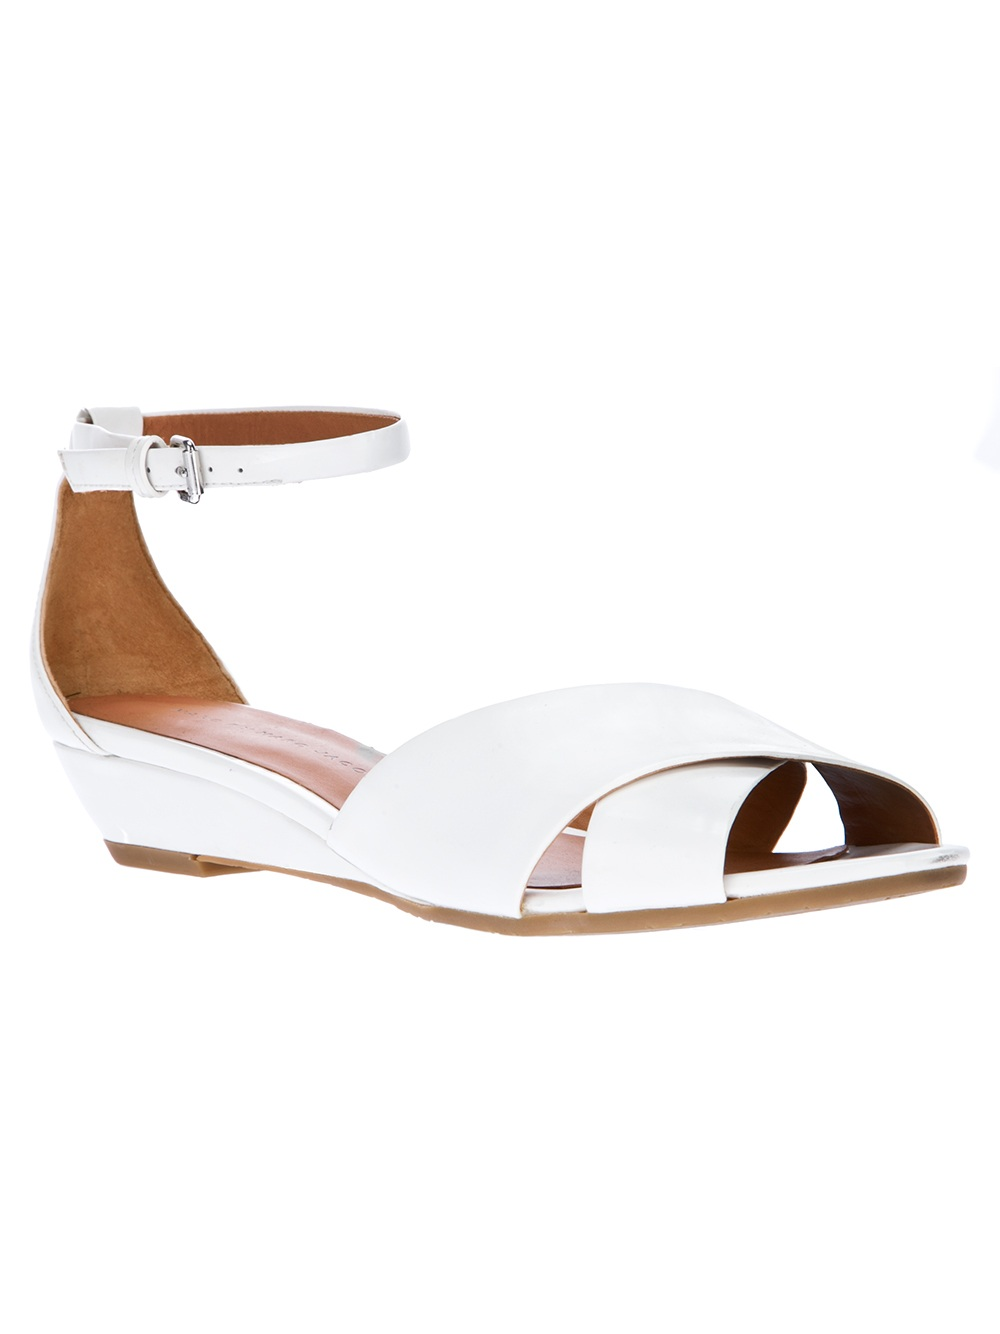 marc by marc low wedge sandal in white lyst